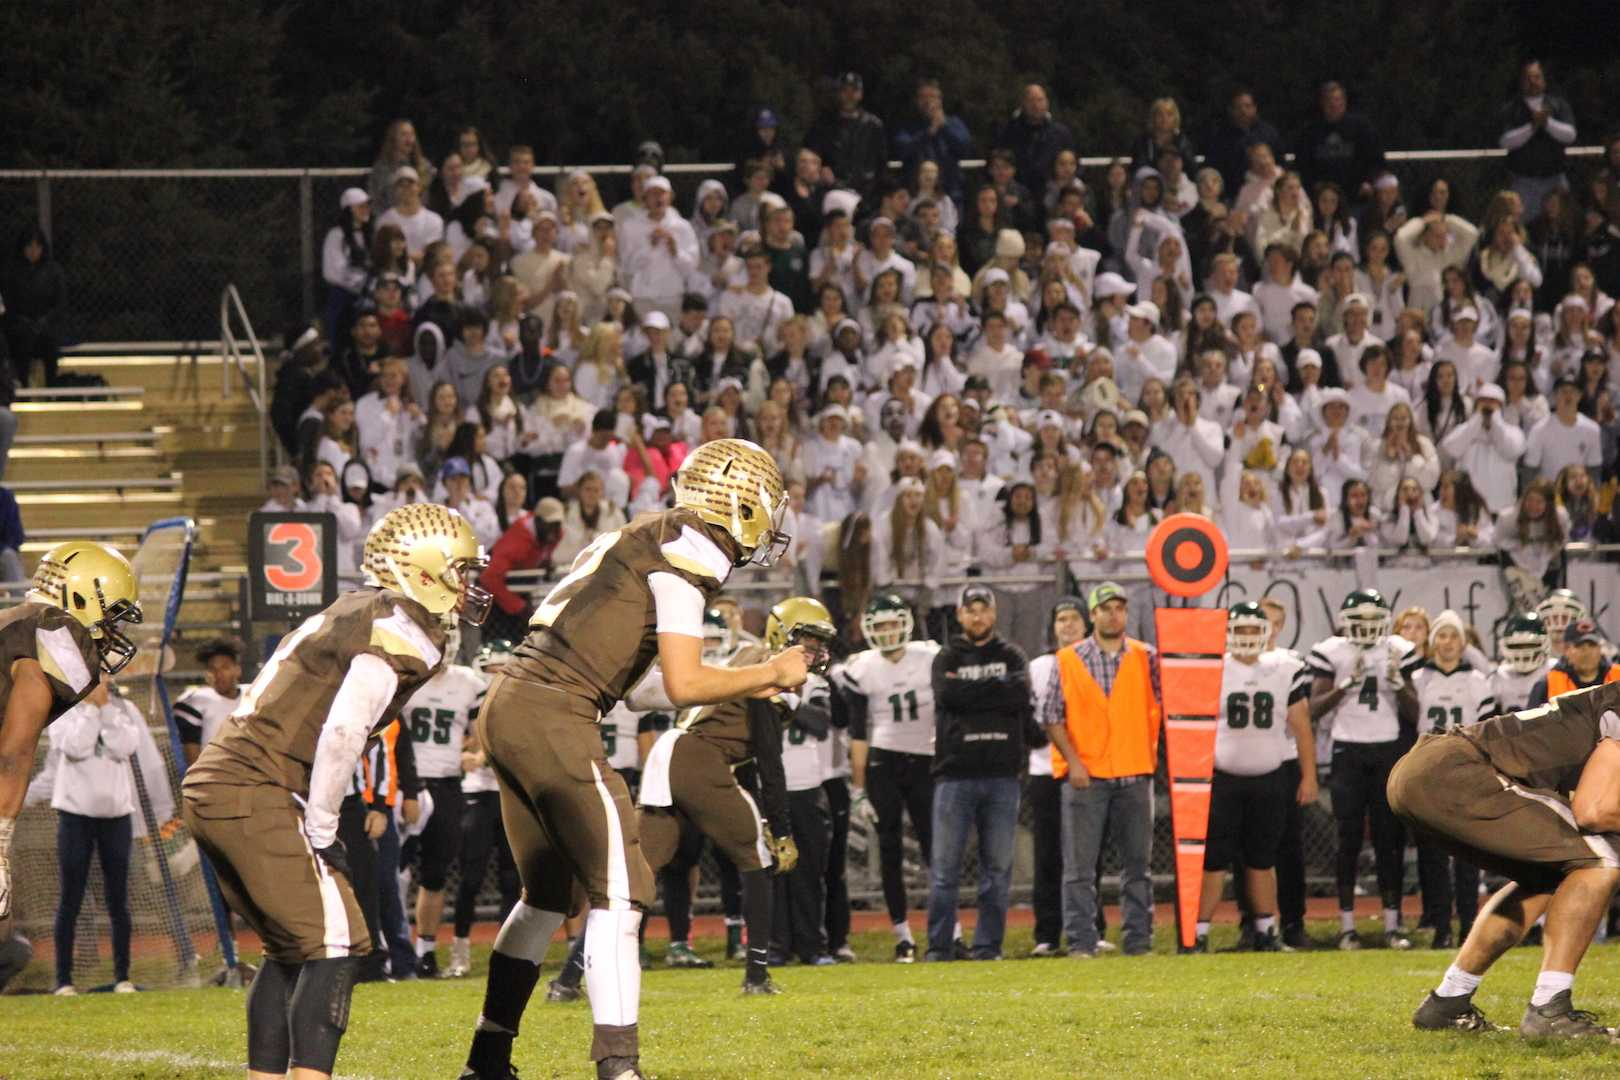 Noah Sanders prepares to receive the snap as the Park High School student section looks on.